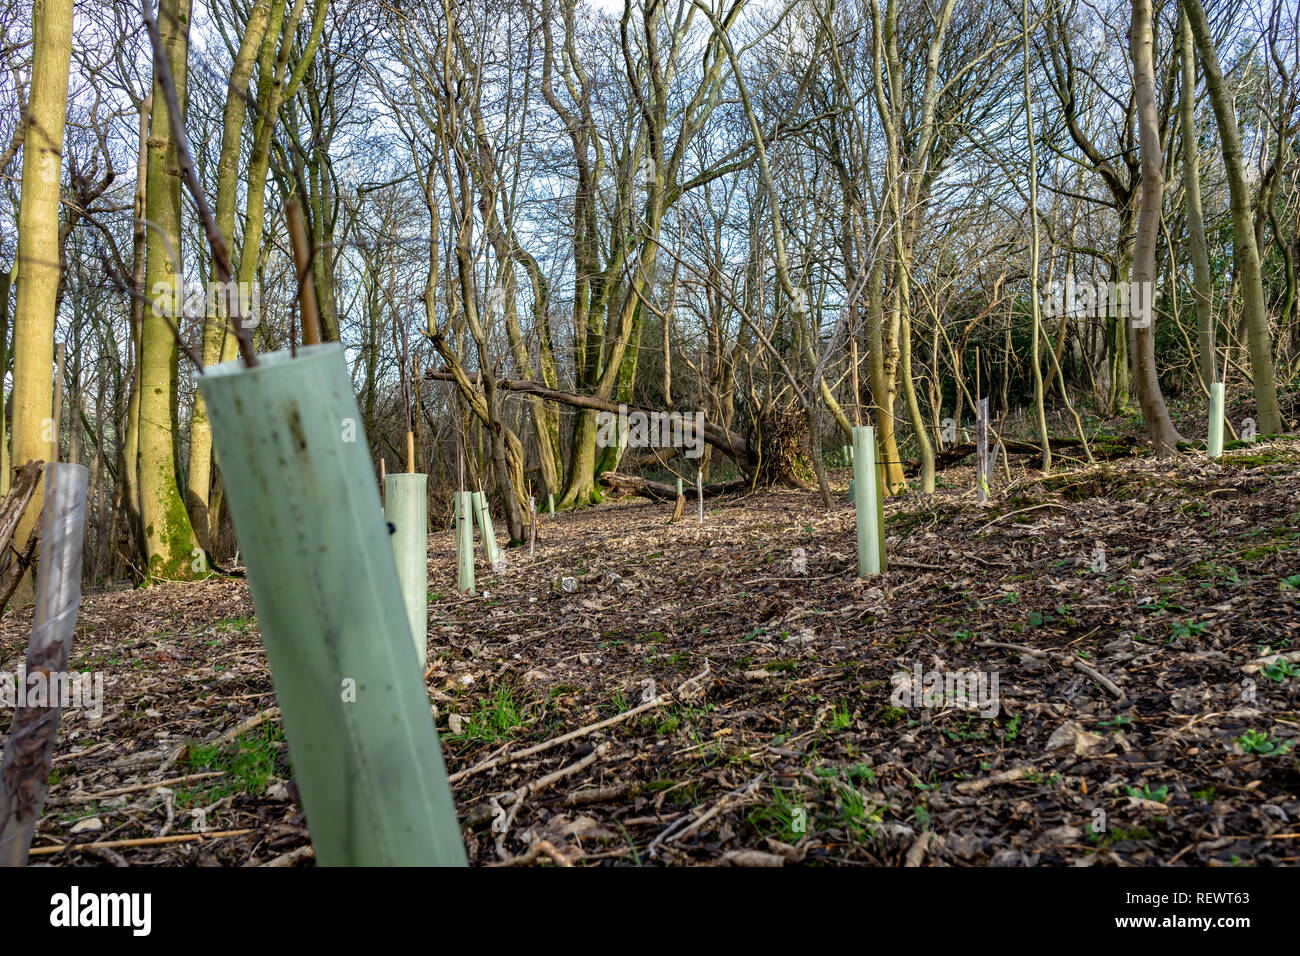 managed woodland in winter - Stock Image